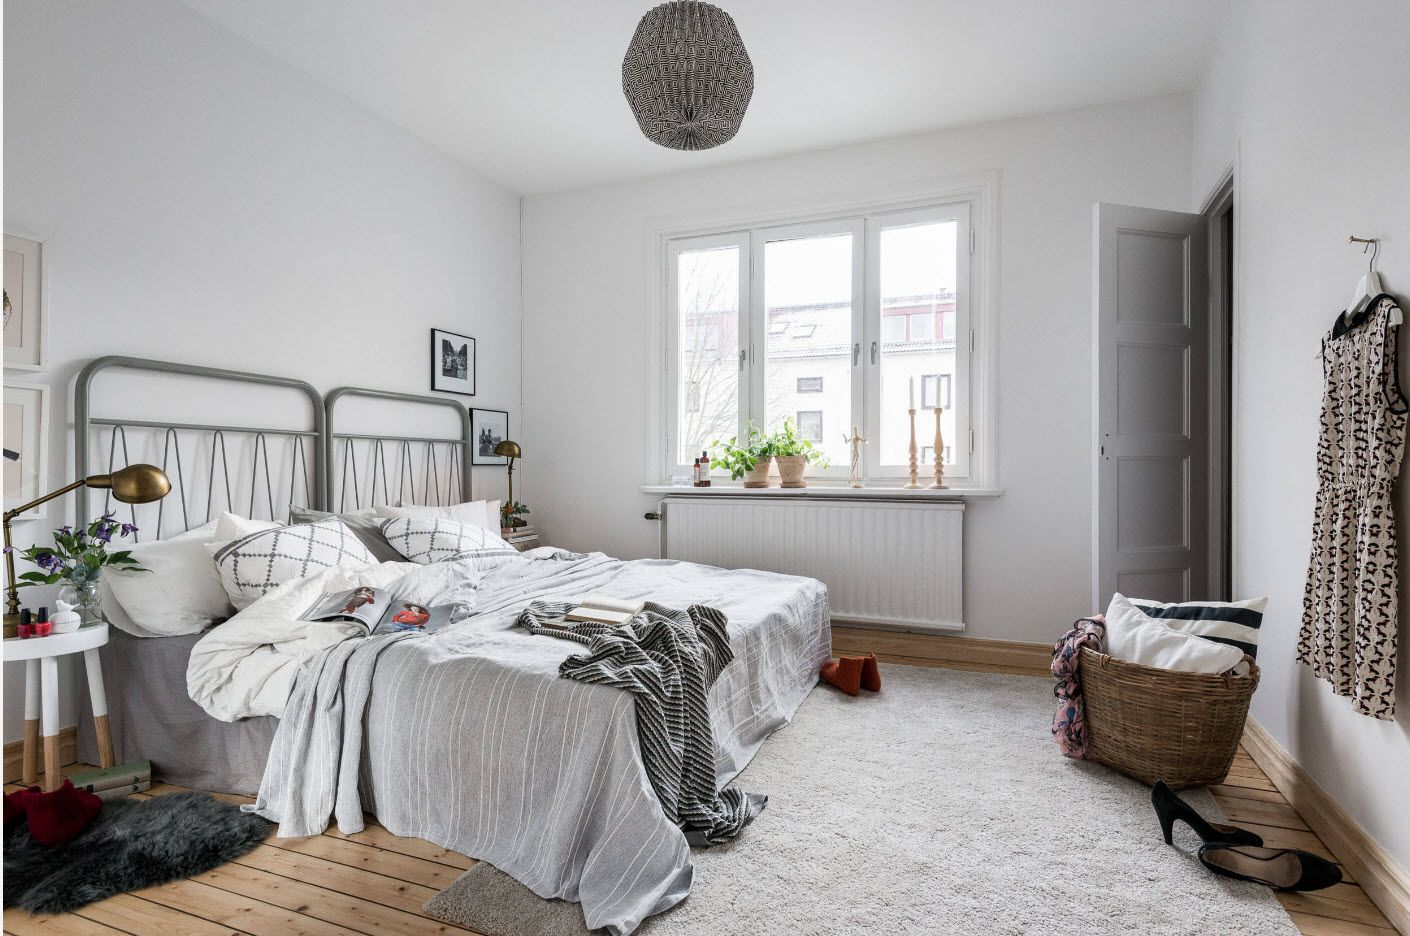 Absolutely white ascetic bedroom atmosphere with metal headboards of the beds